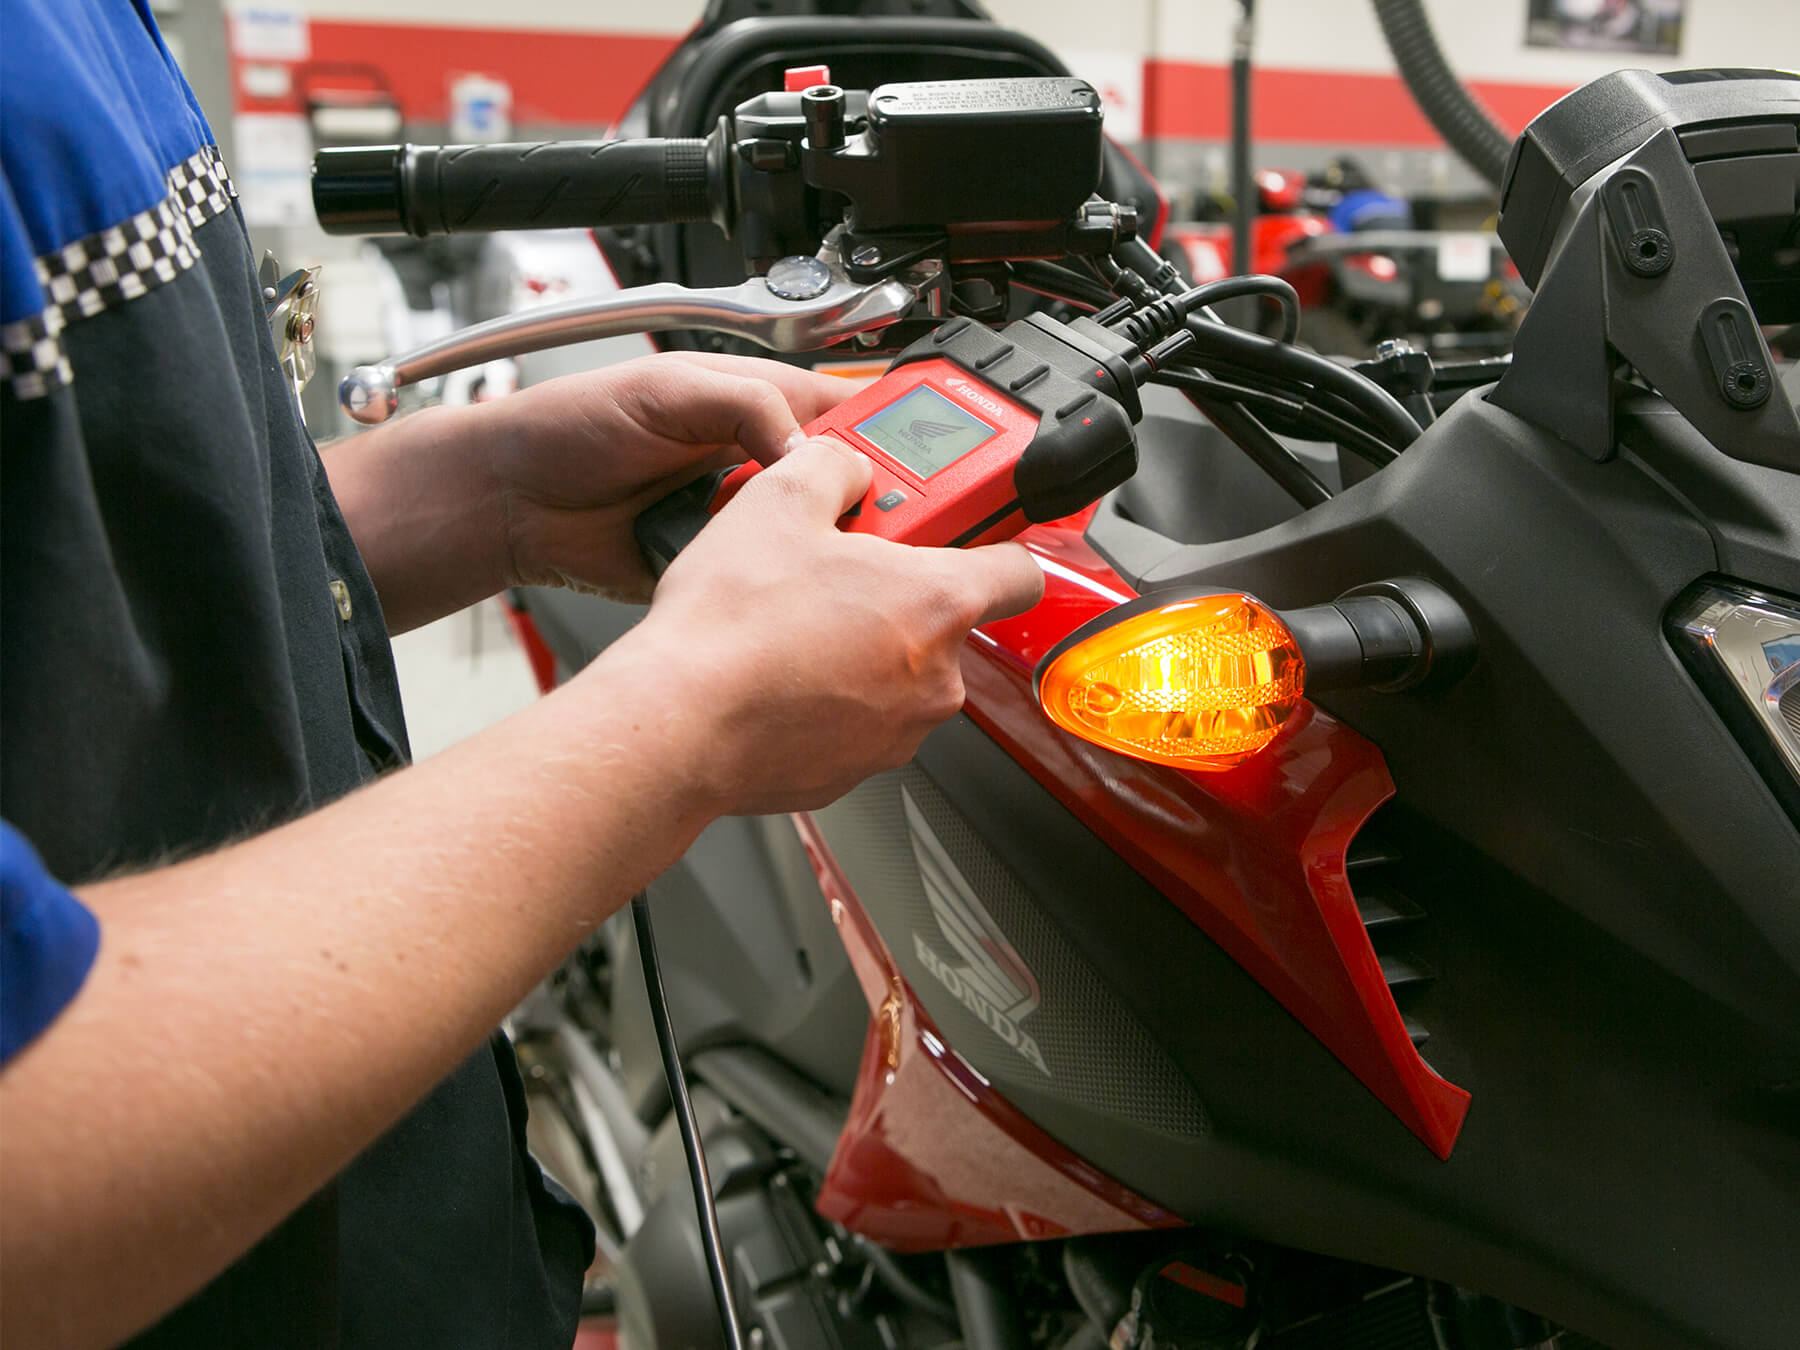 MMI student holding a red Honda tool hooked into a red Honda motorcycle